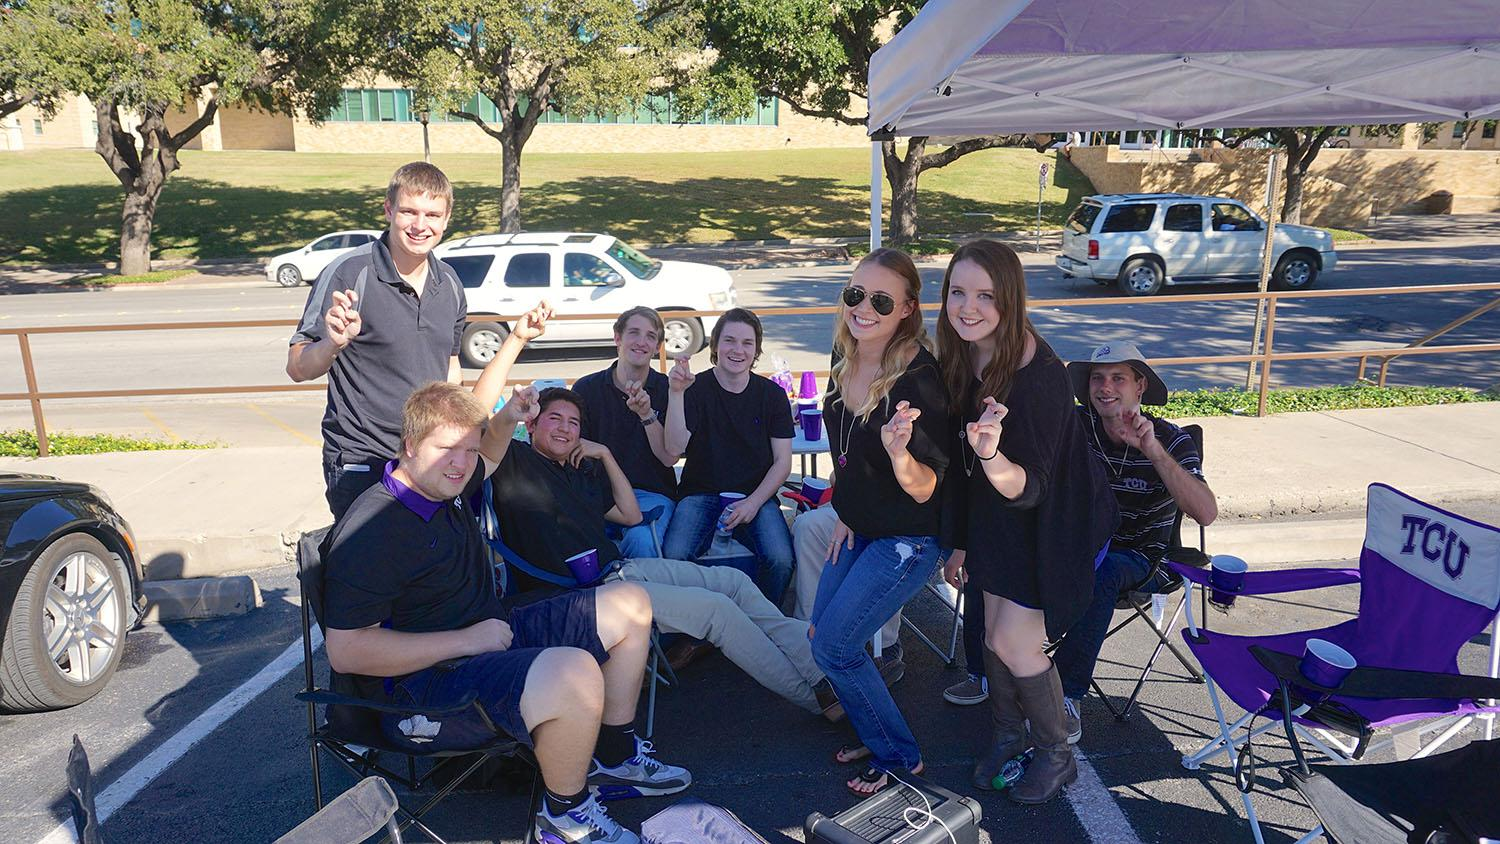 TCU students tailgate outside the Daniel-Meyer Athletic Complex as they eagerly await for the game to begin.